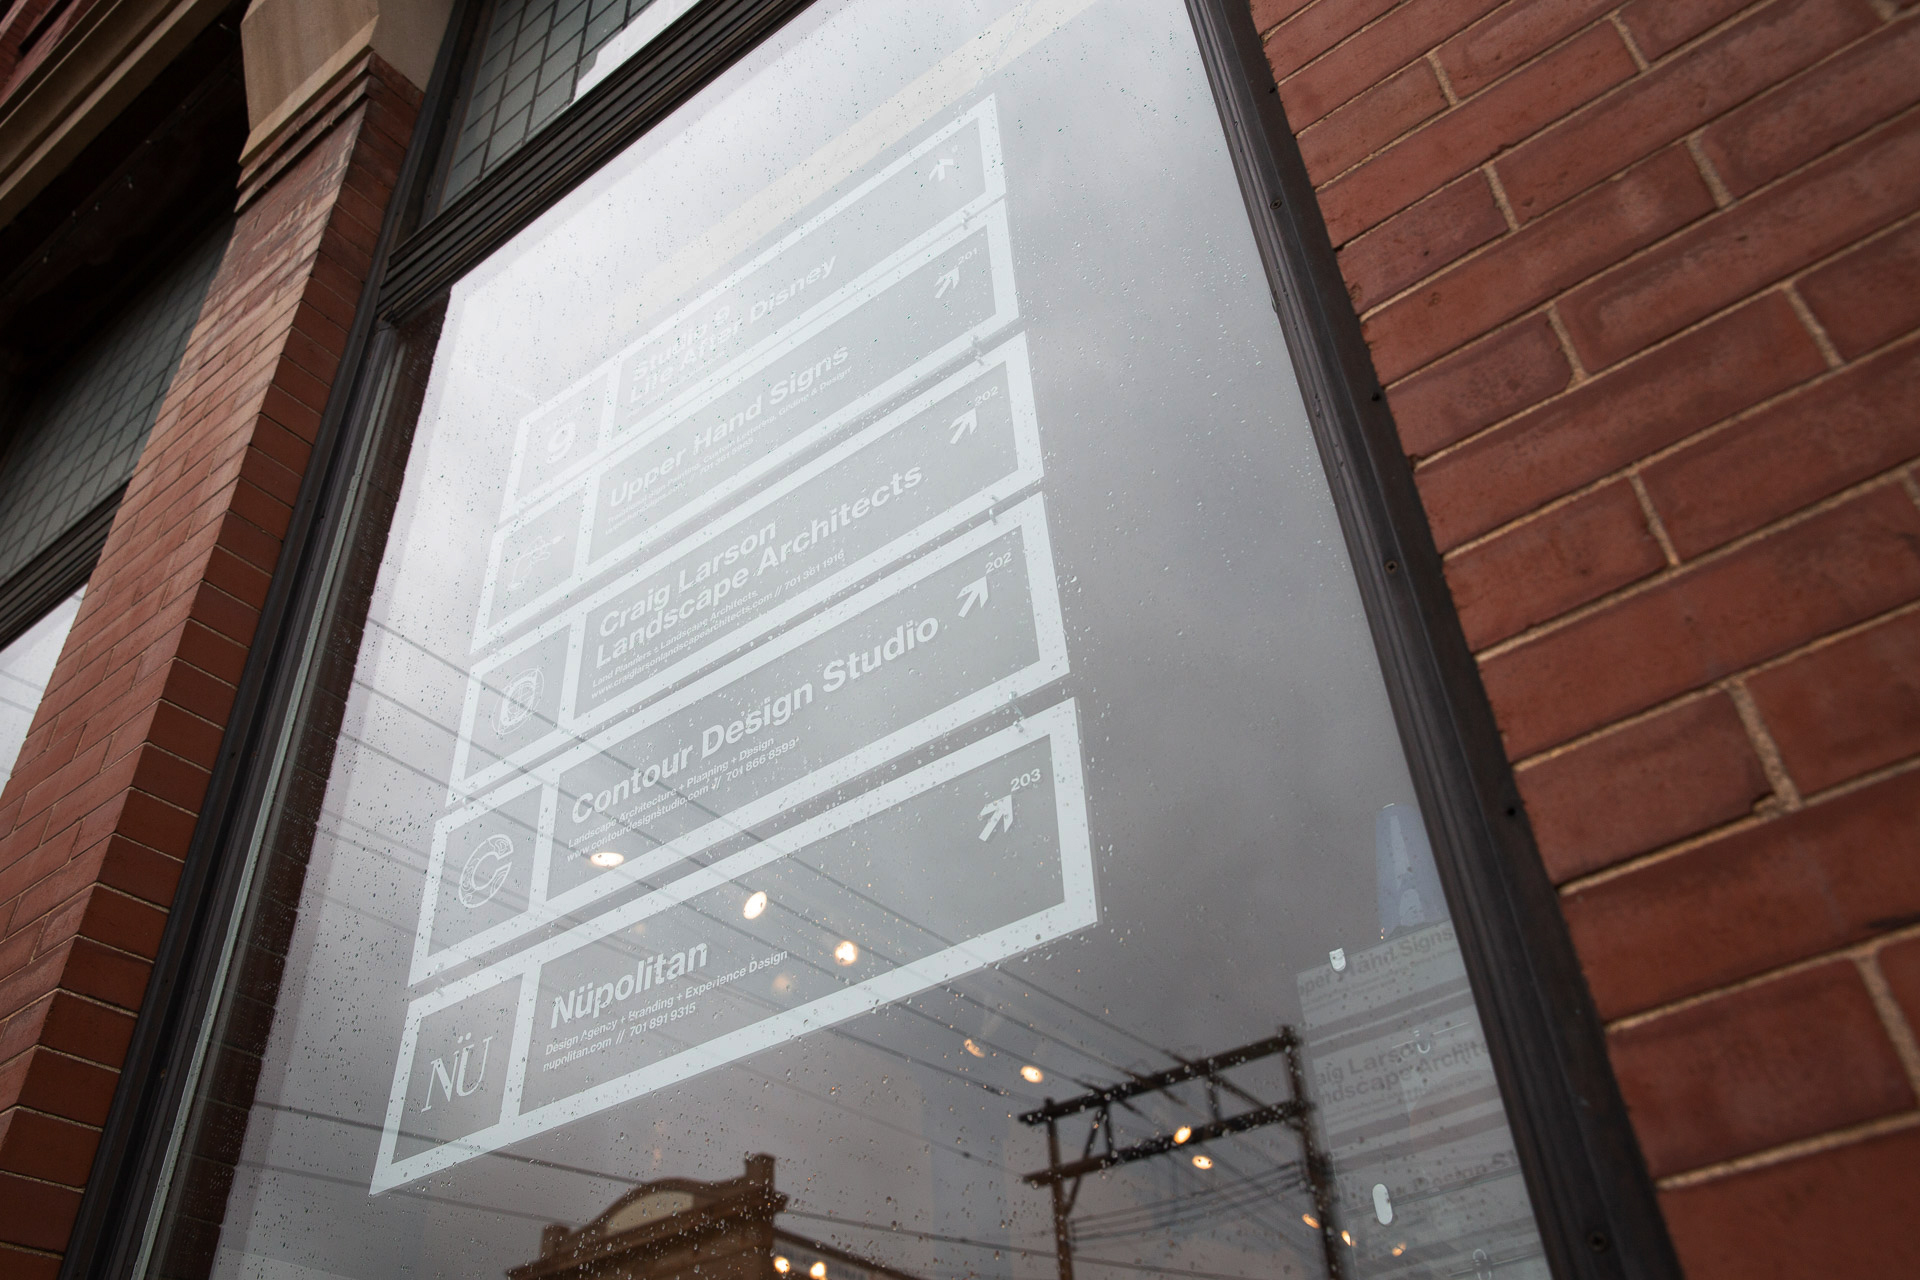 Five clear acrylic panels with white vinyl lettering hanging in the window of a brick building